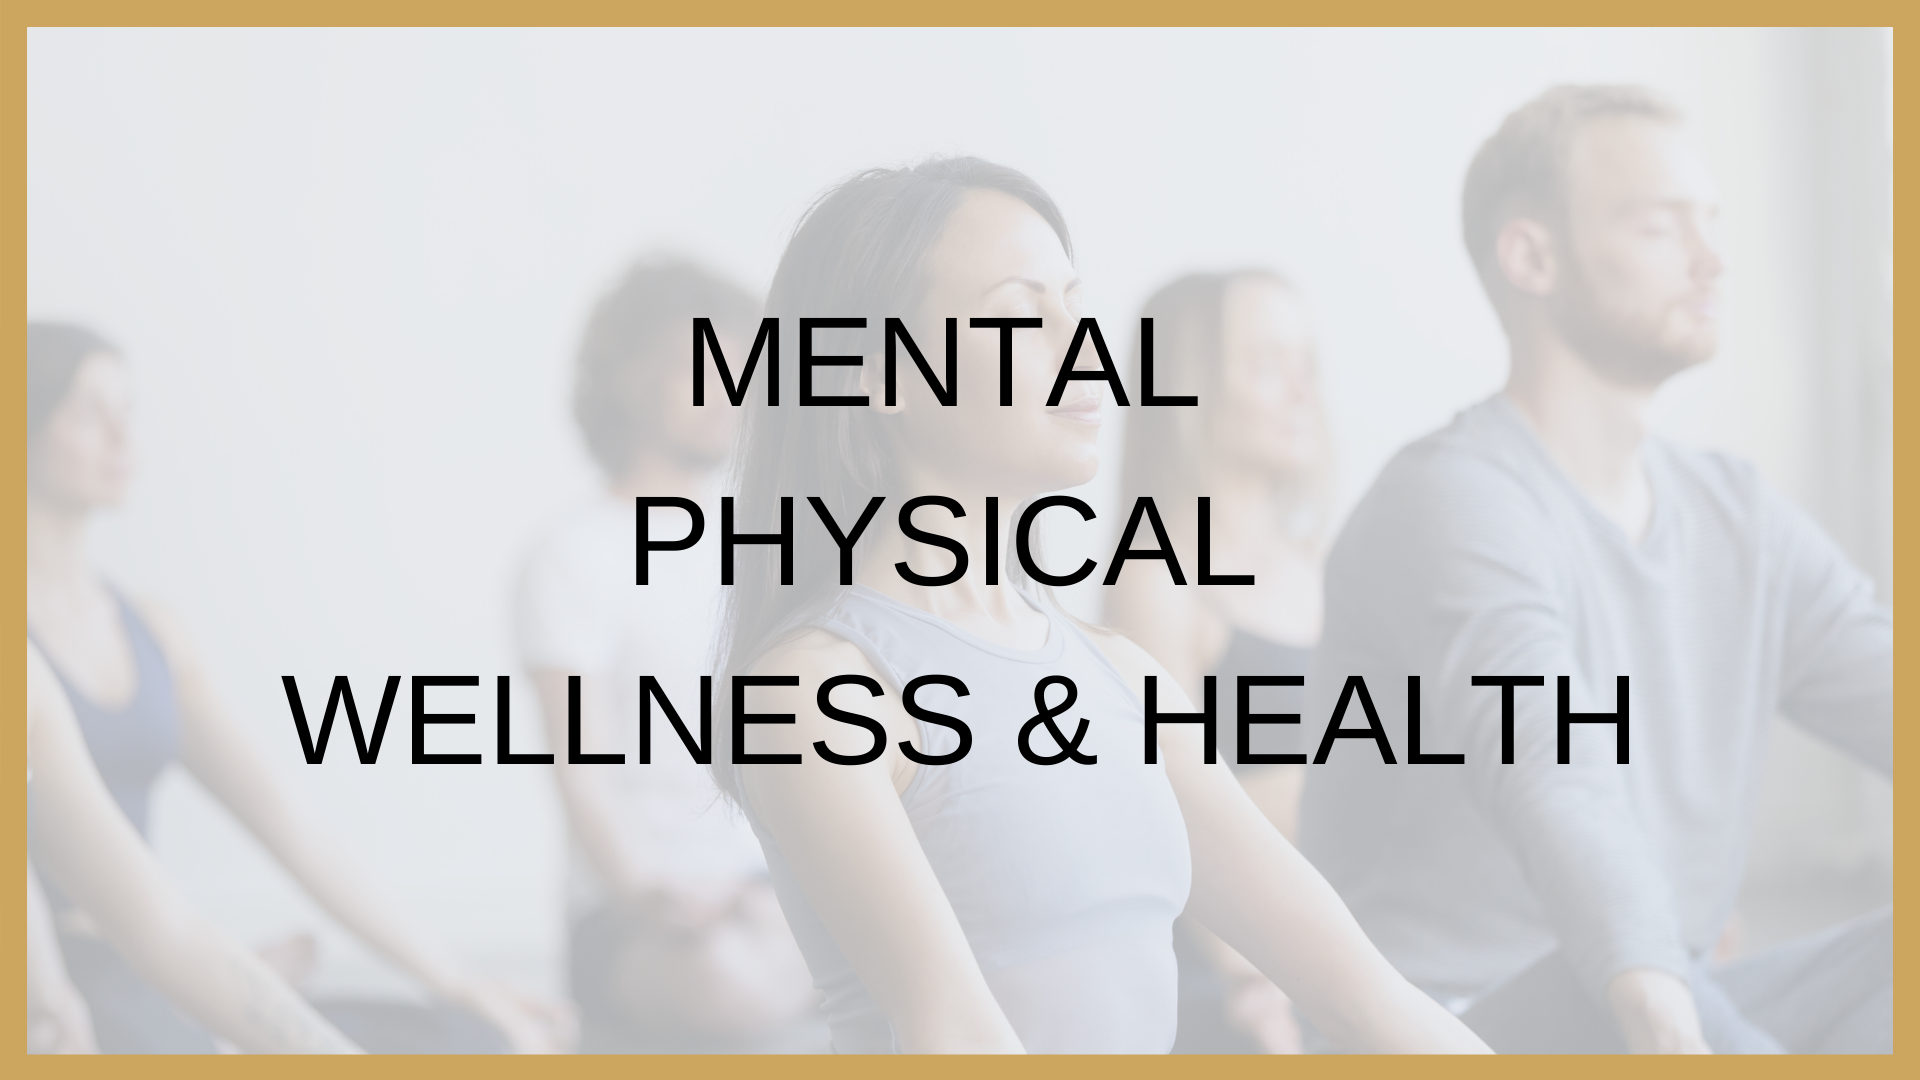 Mental and Physical Care